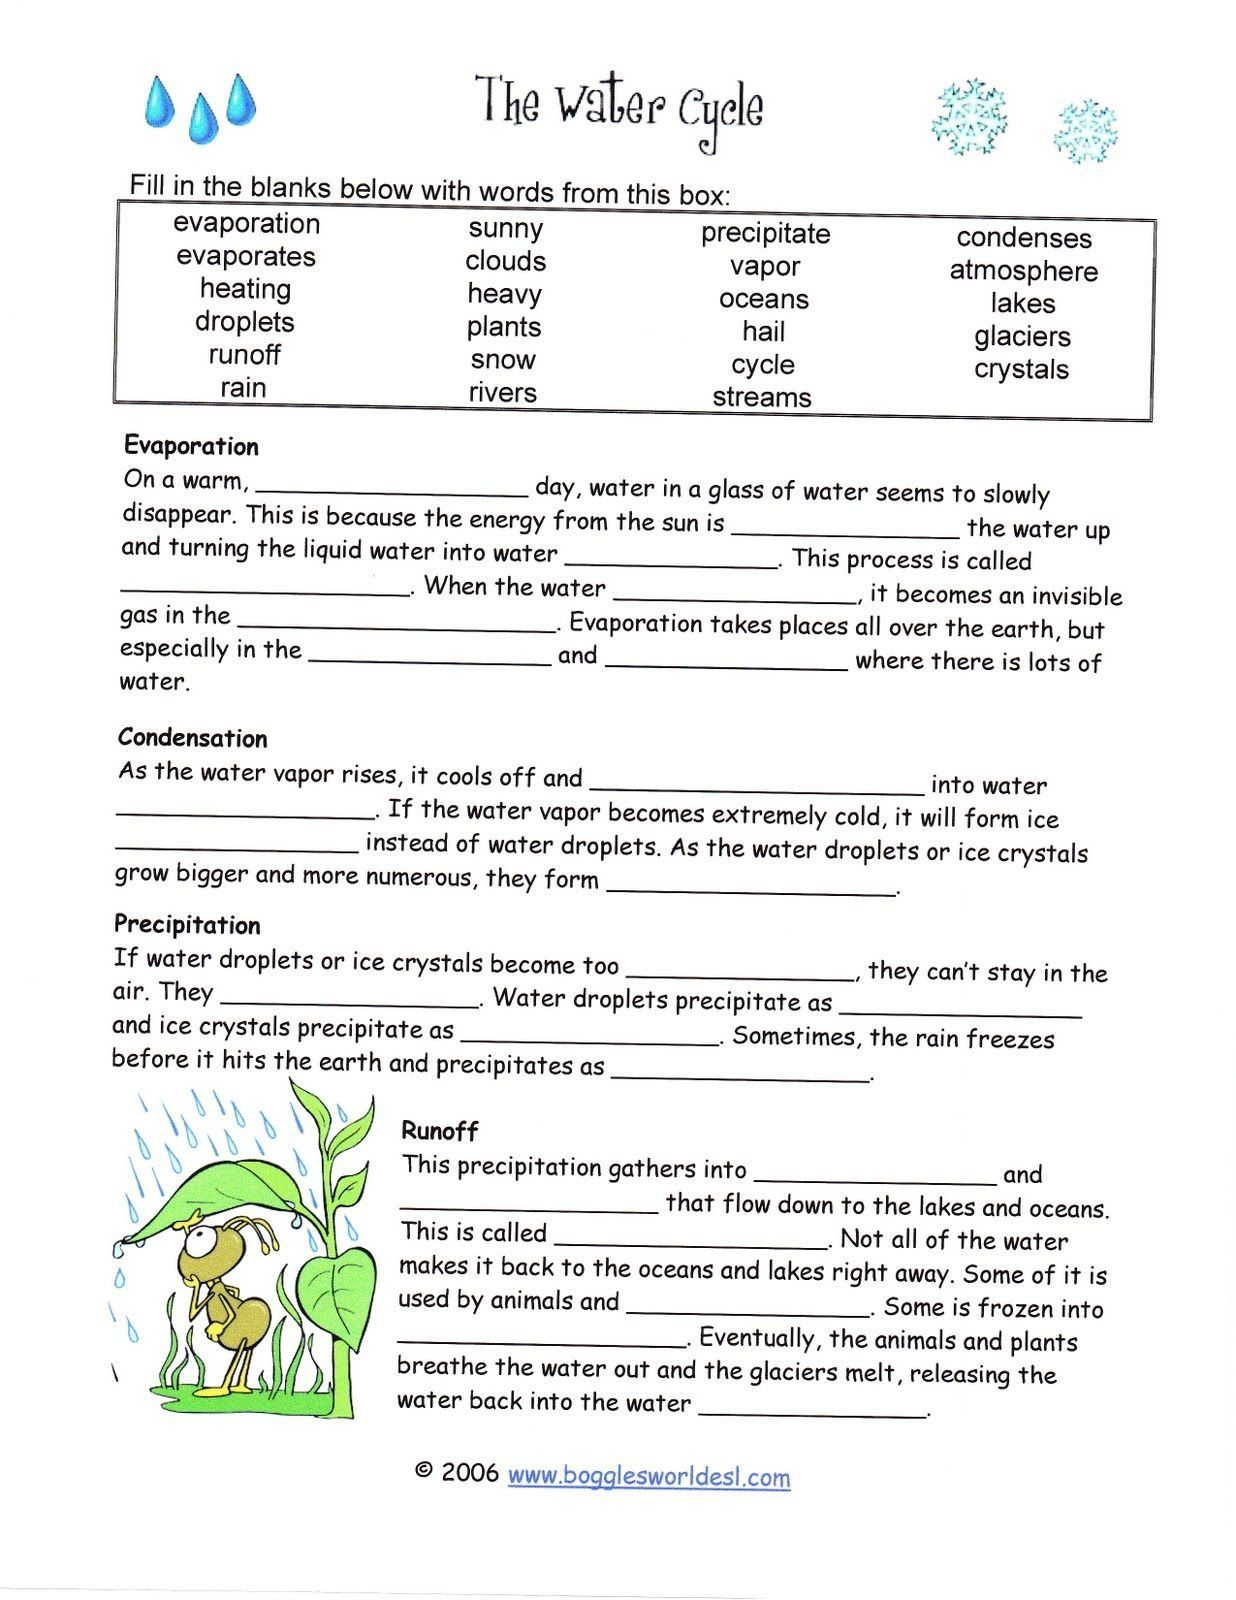 Water Cycle Worksheet Middle School The Water Cycle